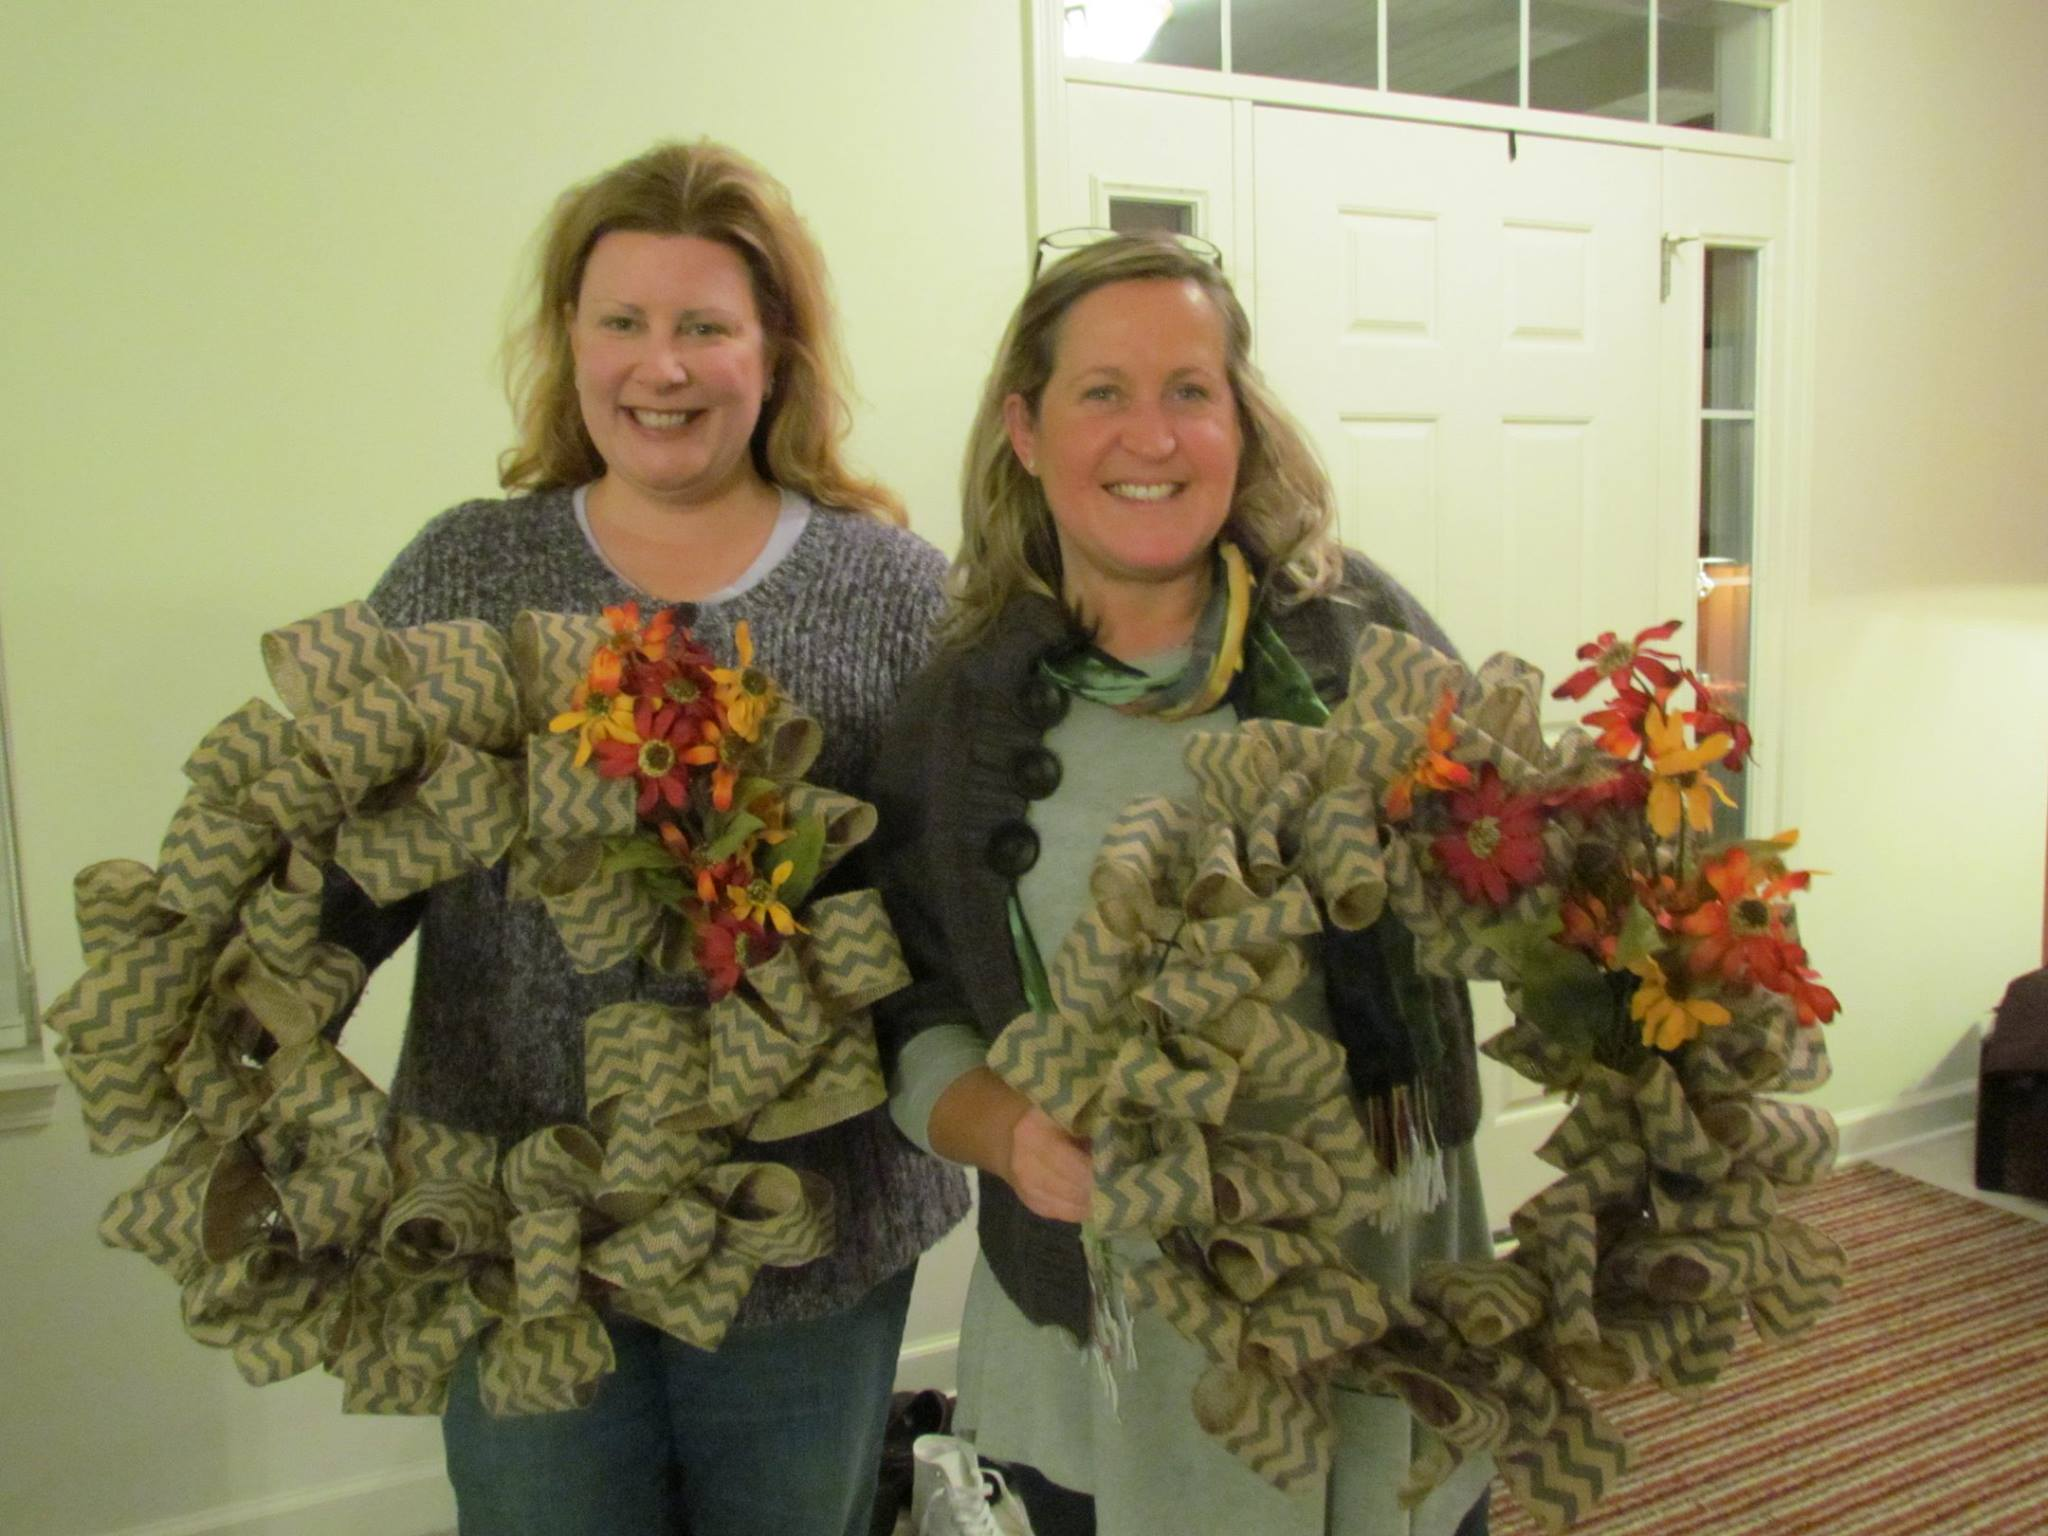 Burlap Wreath Making Fundraiser